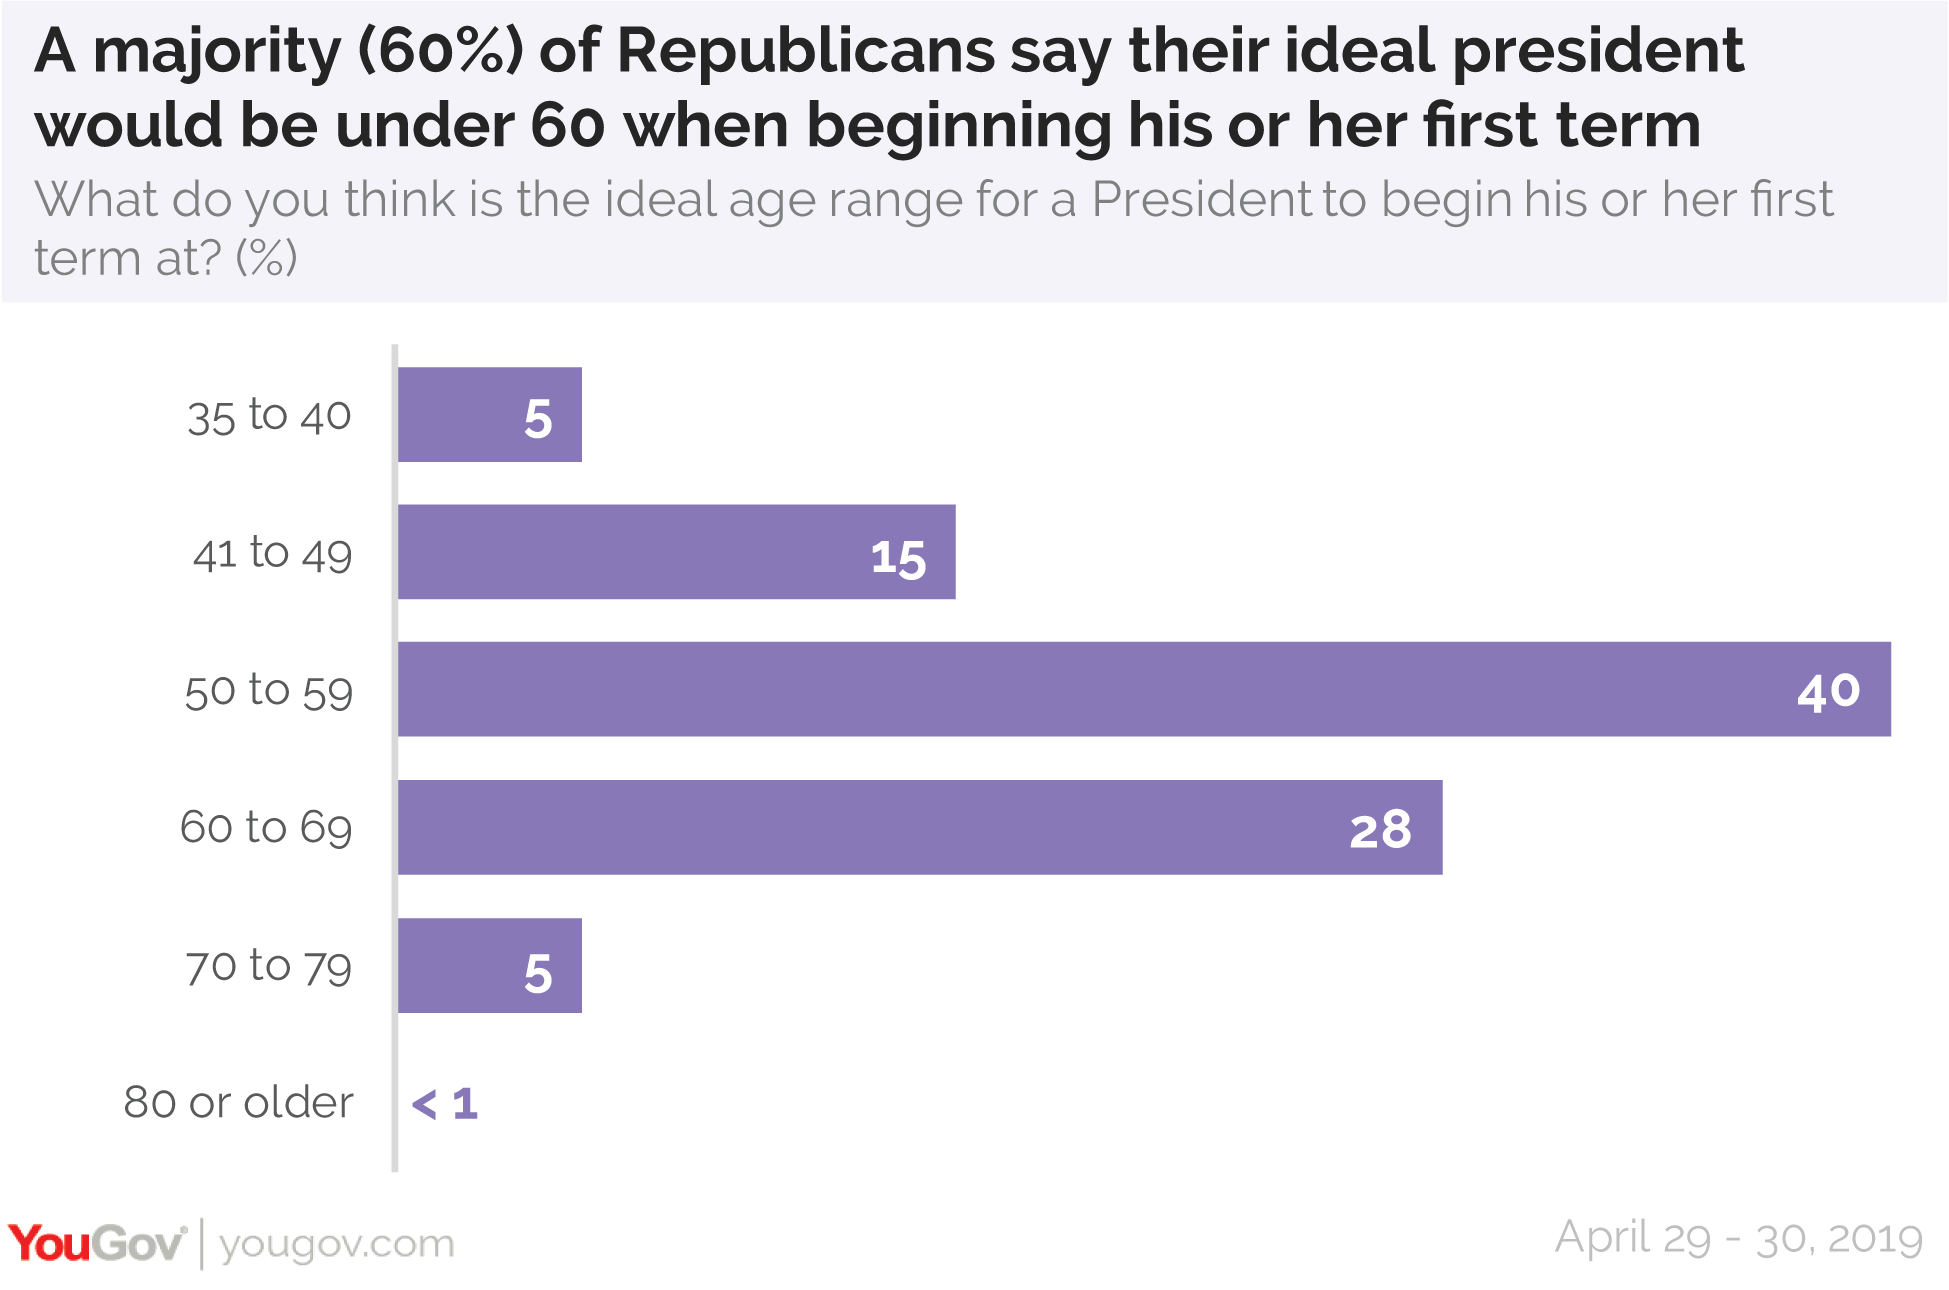 A majority of Republicans say their ideal president would be under 60 when beginning his or her first term